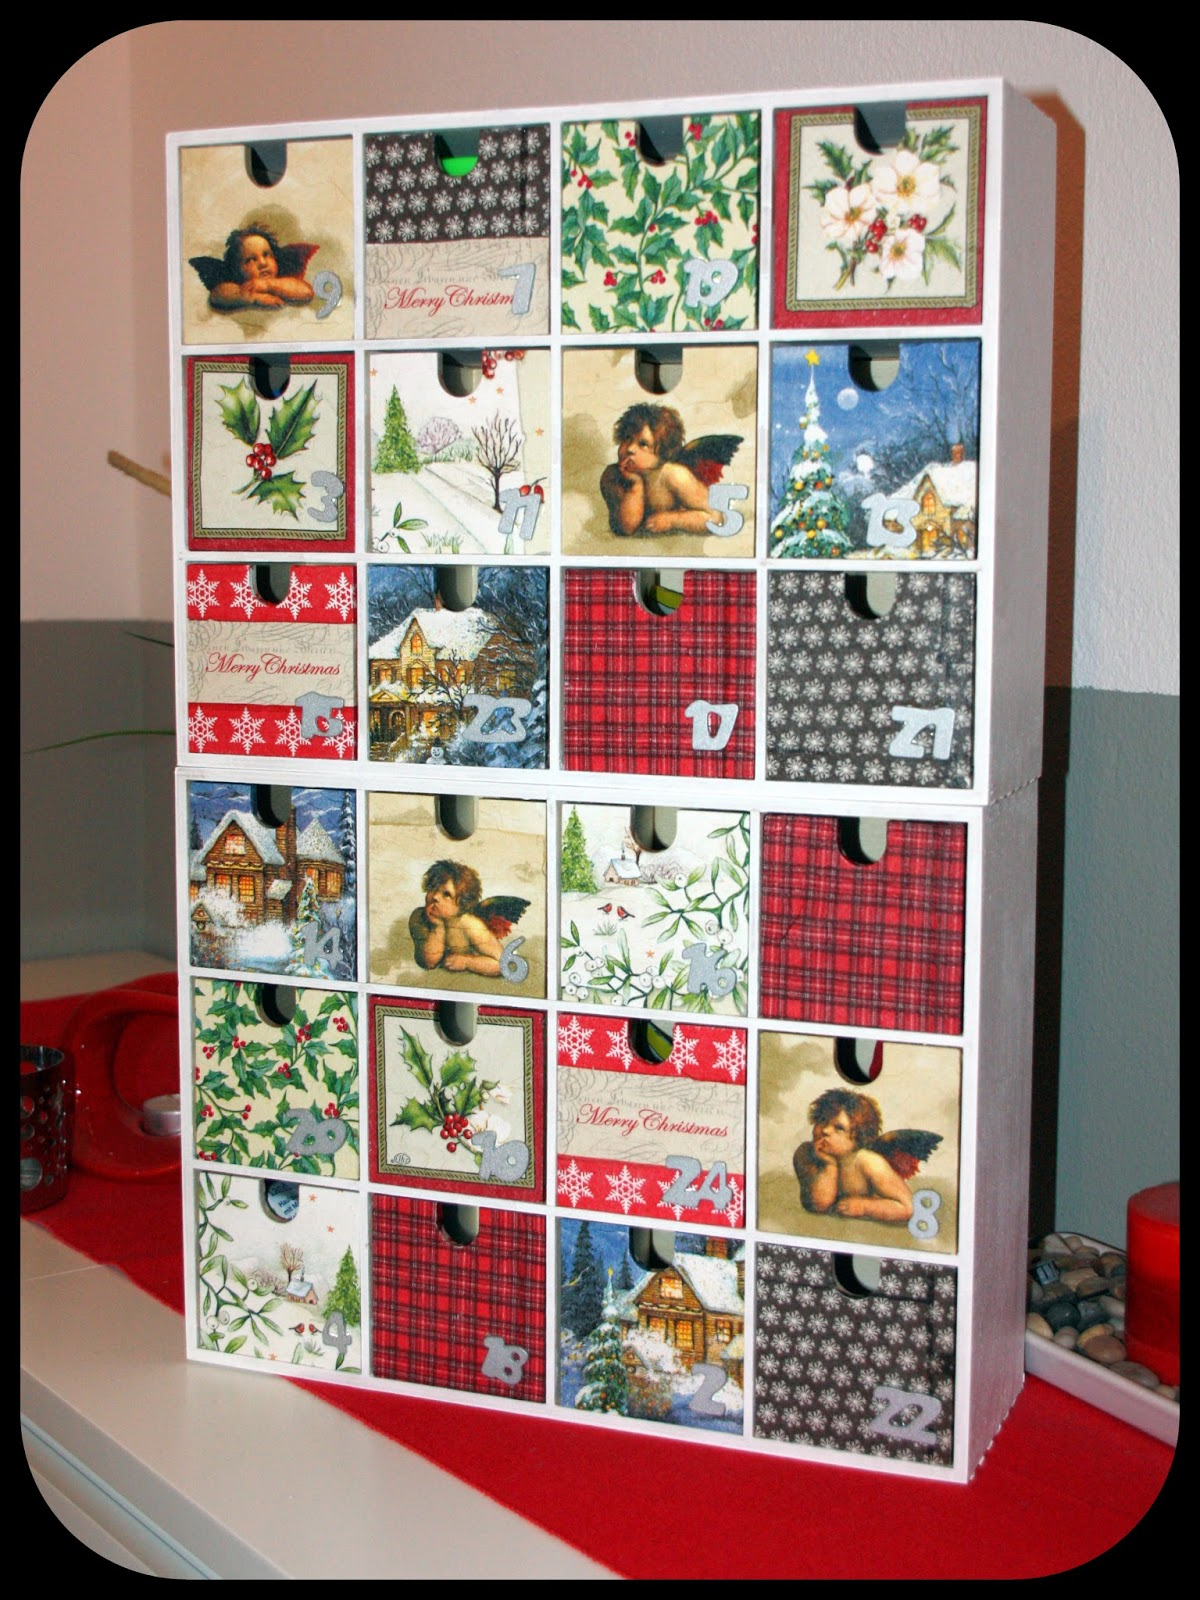 Ikea Adventskalender Werklstube Adventskalender Moppe